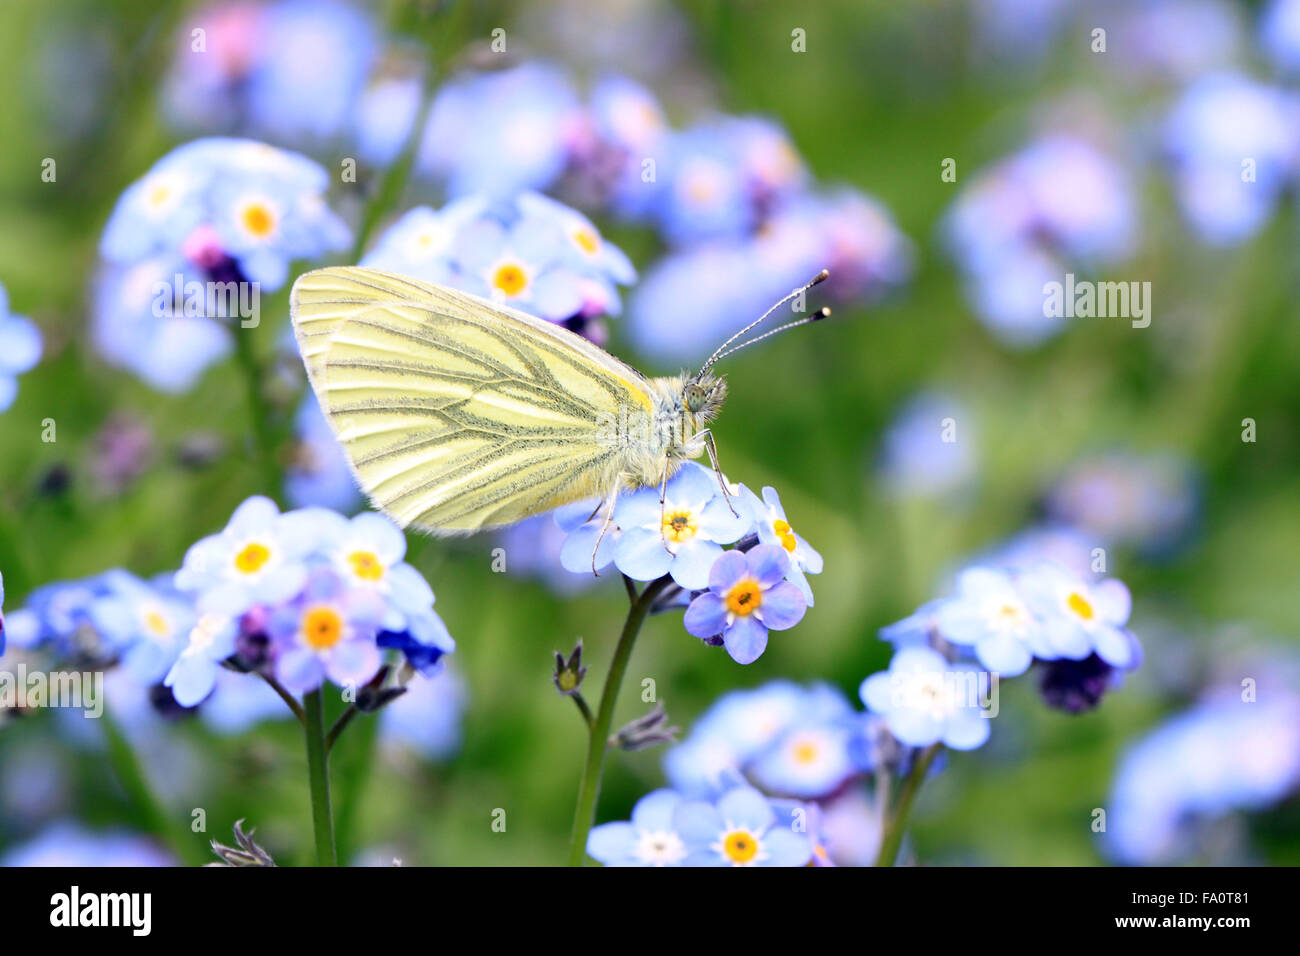 Green Veined White Pieris napi butterfly on flower head in an English cottage garden Stock Photo